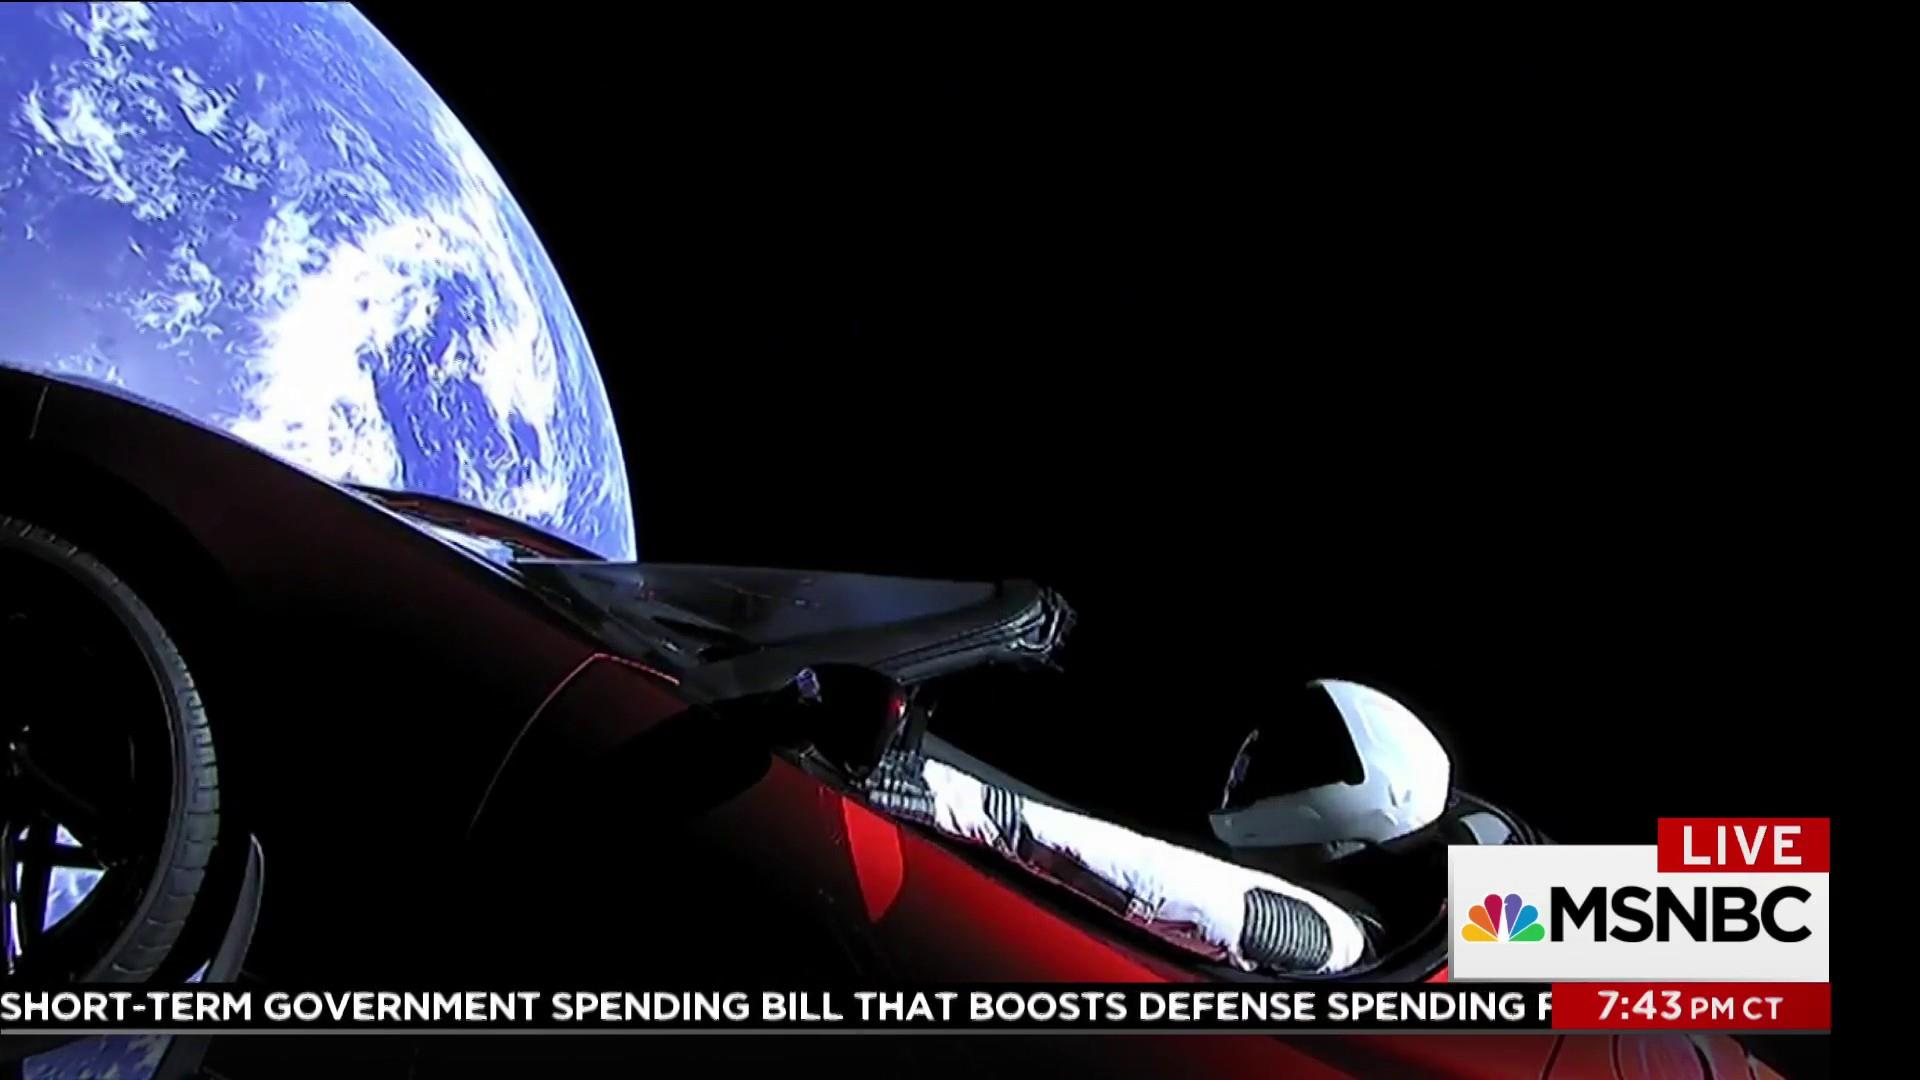 SpaceX launches Tesla sports car into sun's orbit